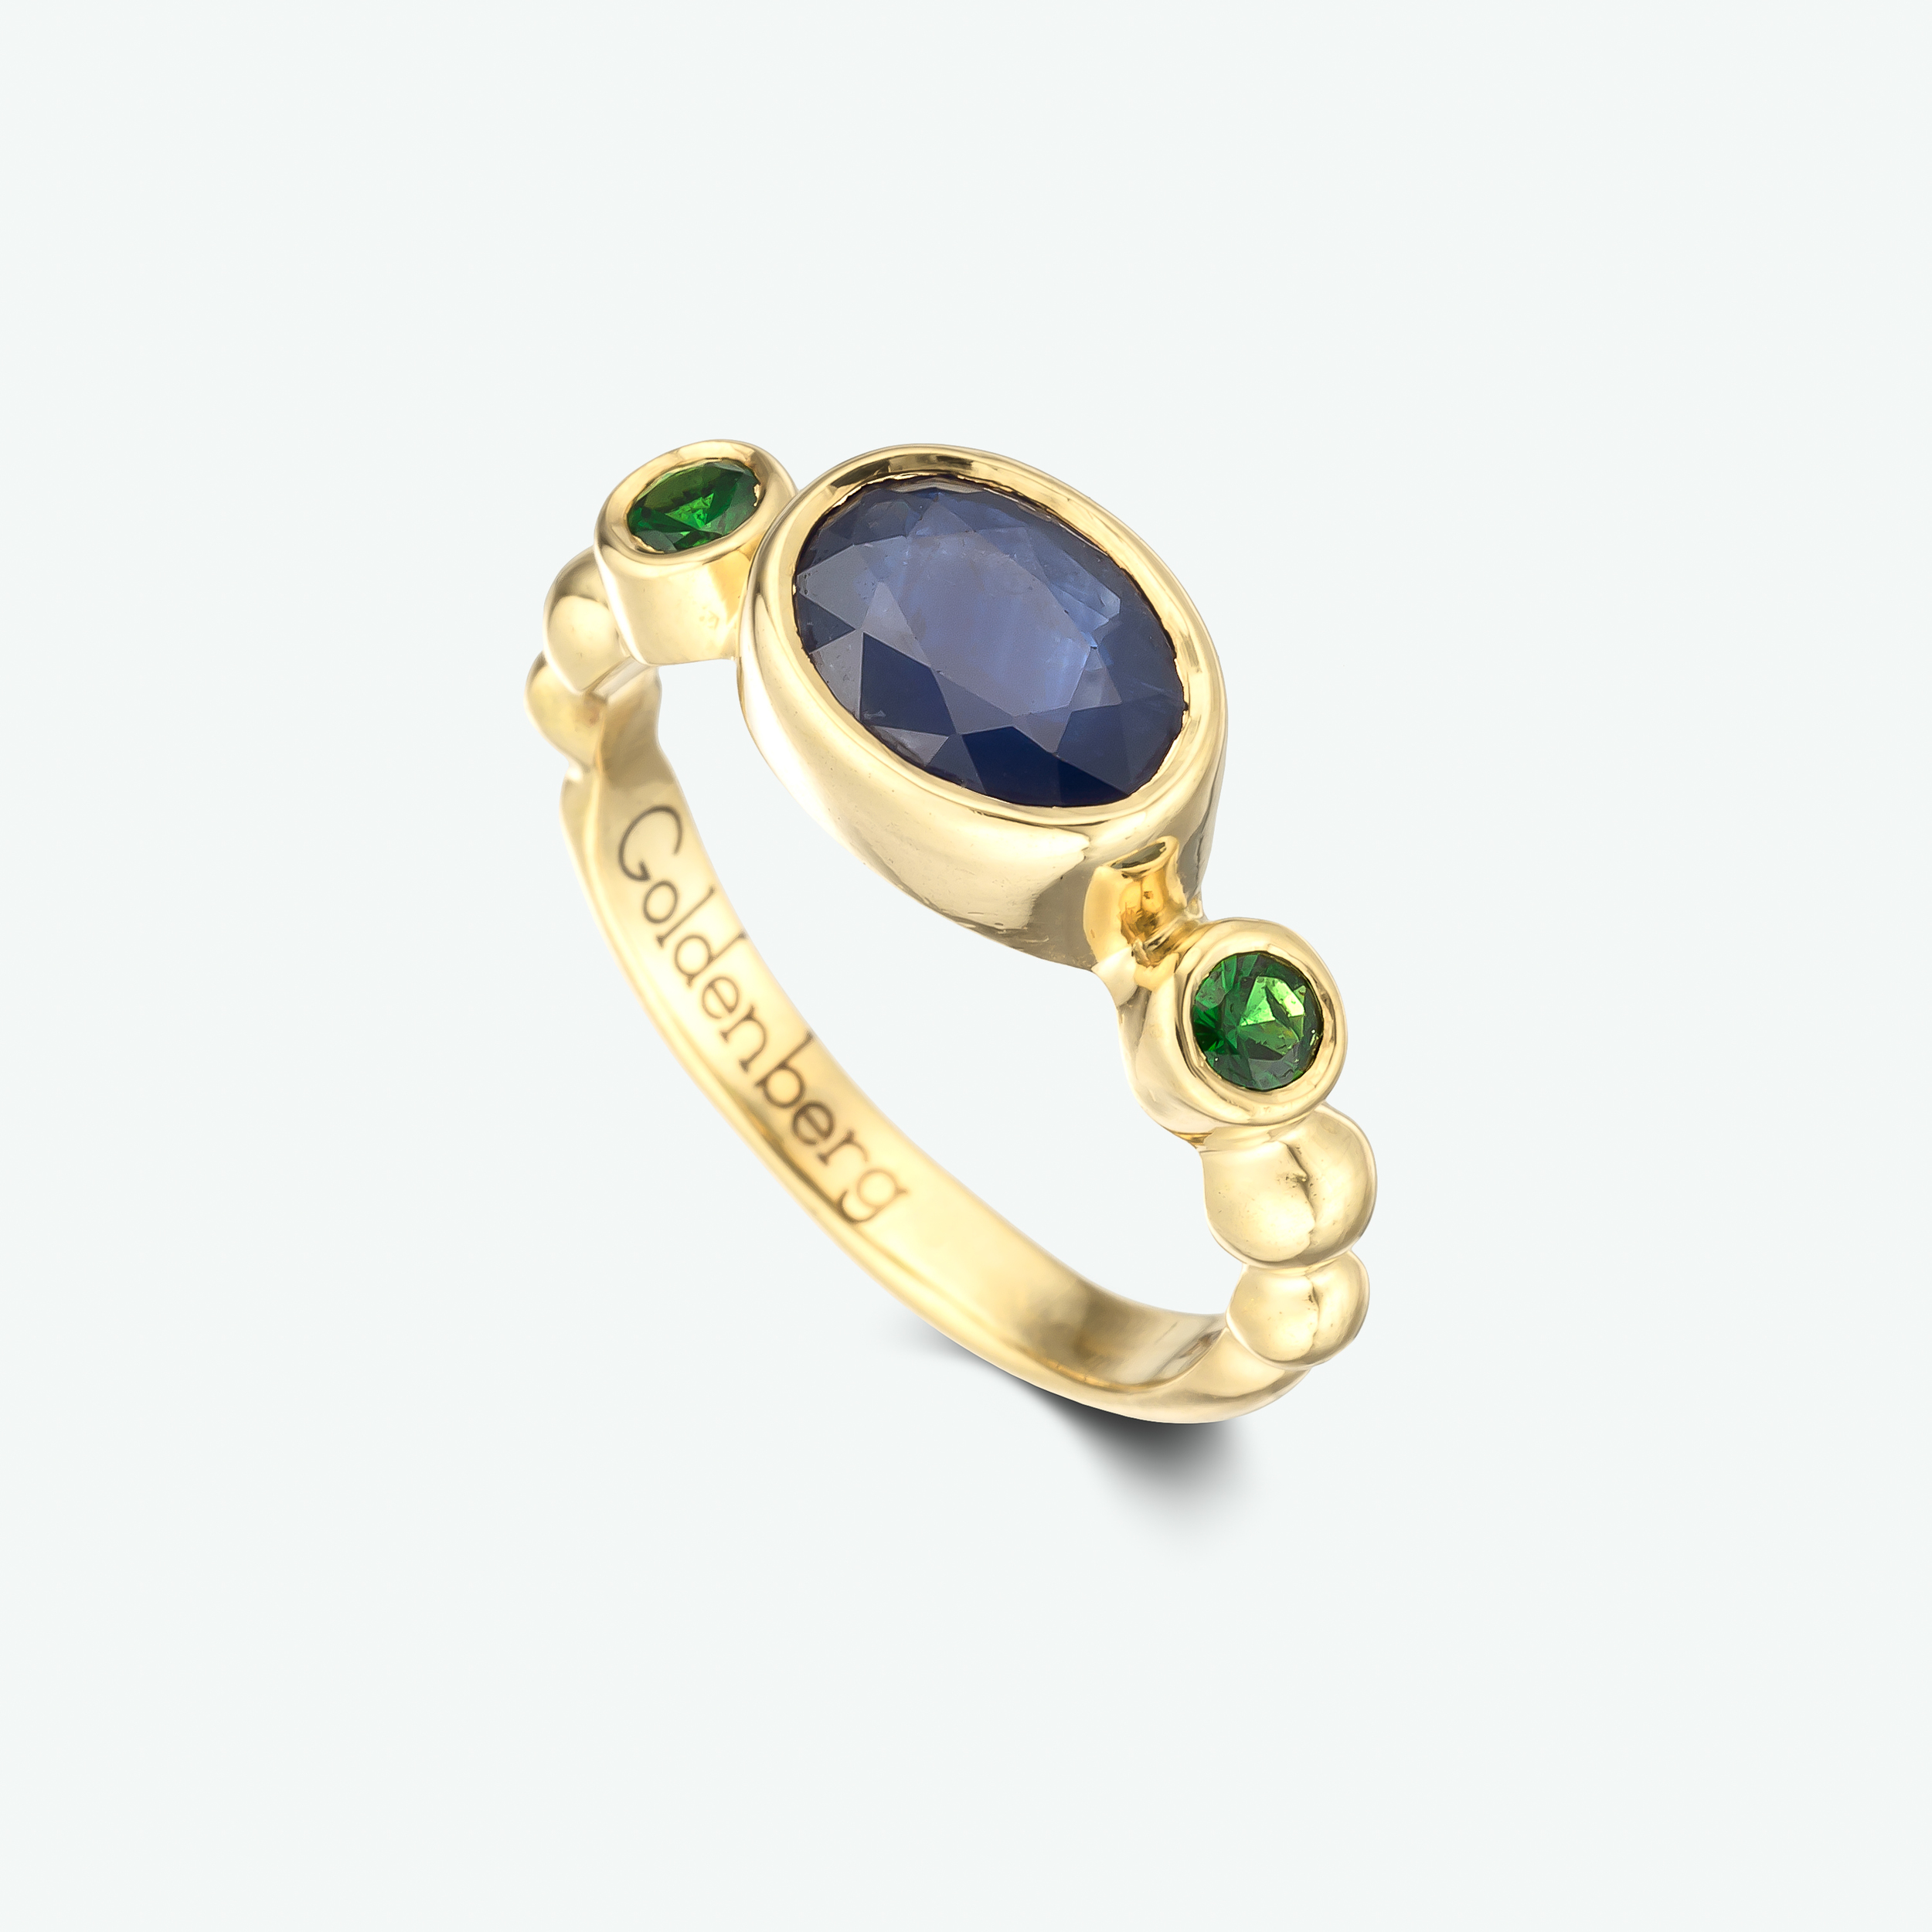 'Family heirloom project' This fabulous ring is composed of 18k yellow gold and set with a lovely dark blue sapphire and green tsavorite garnets.